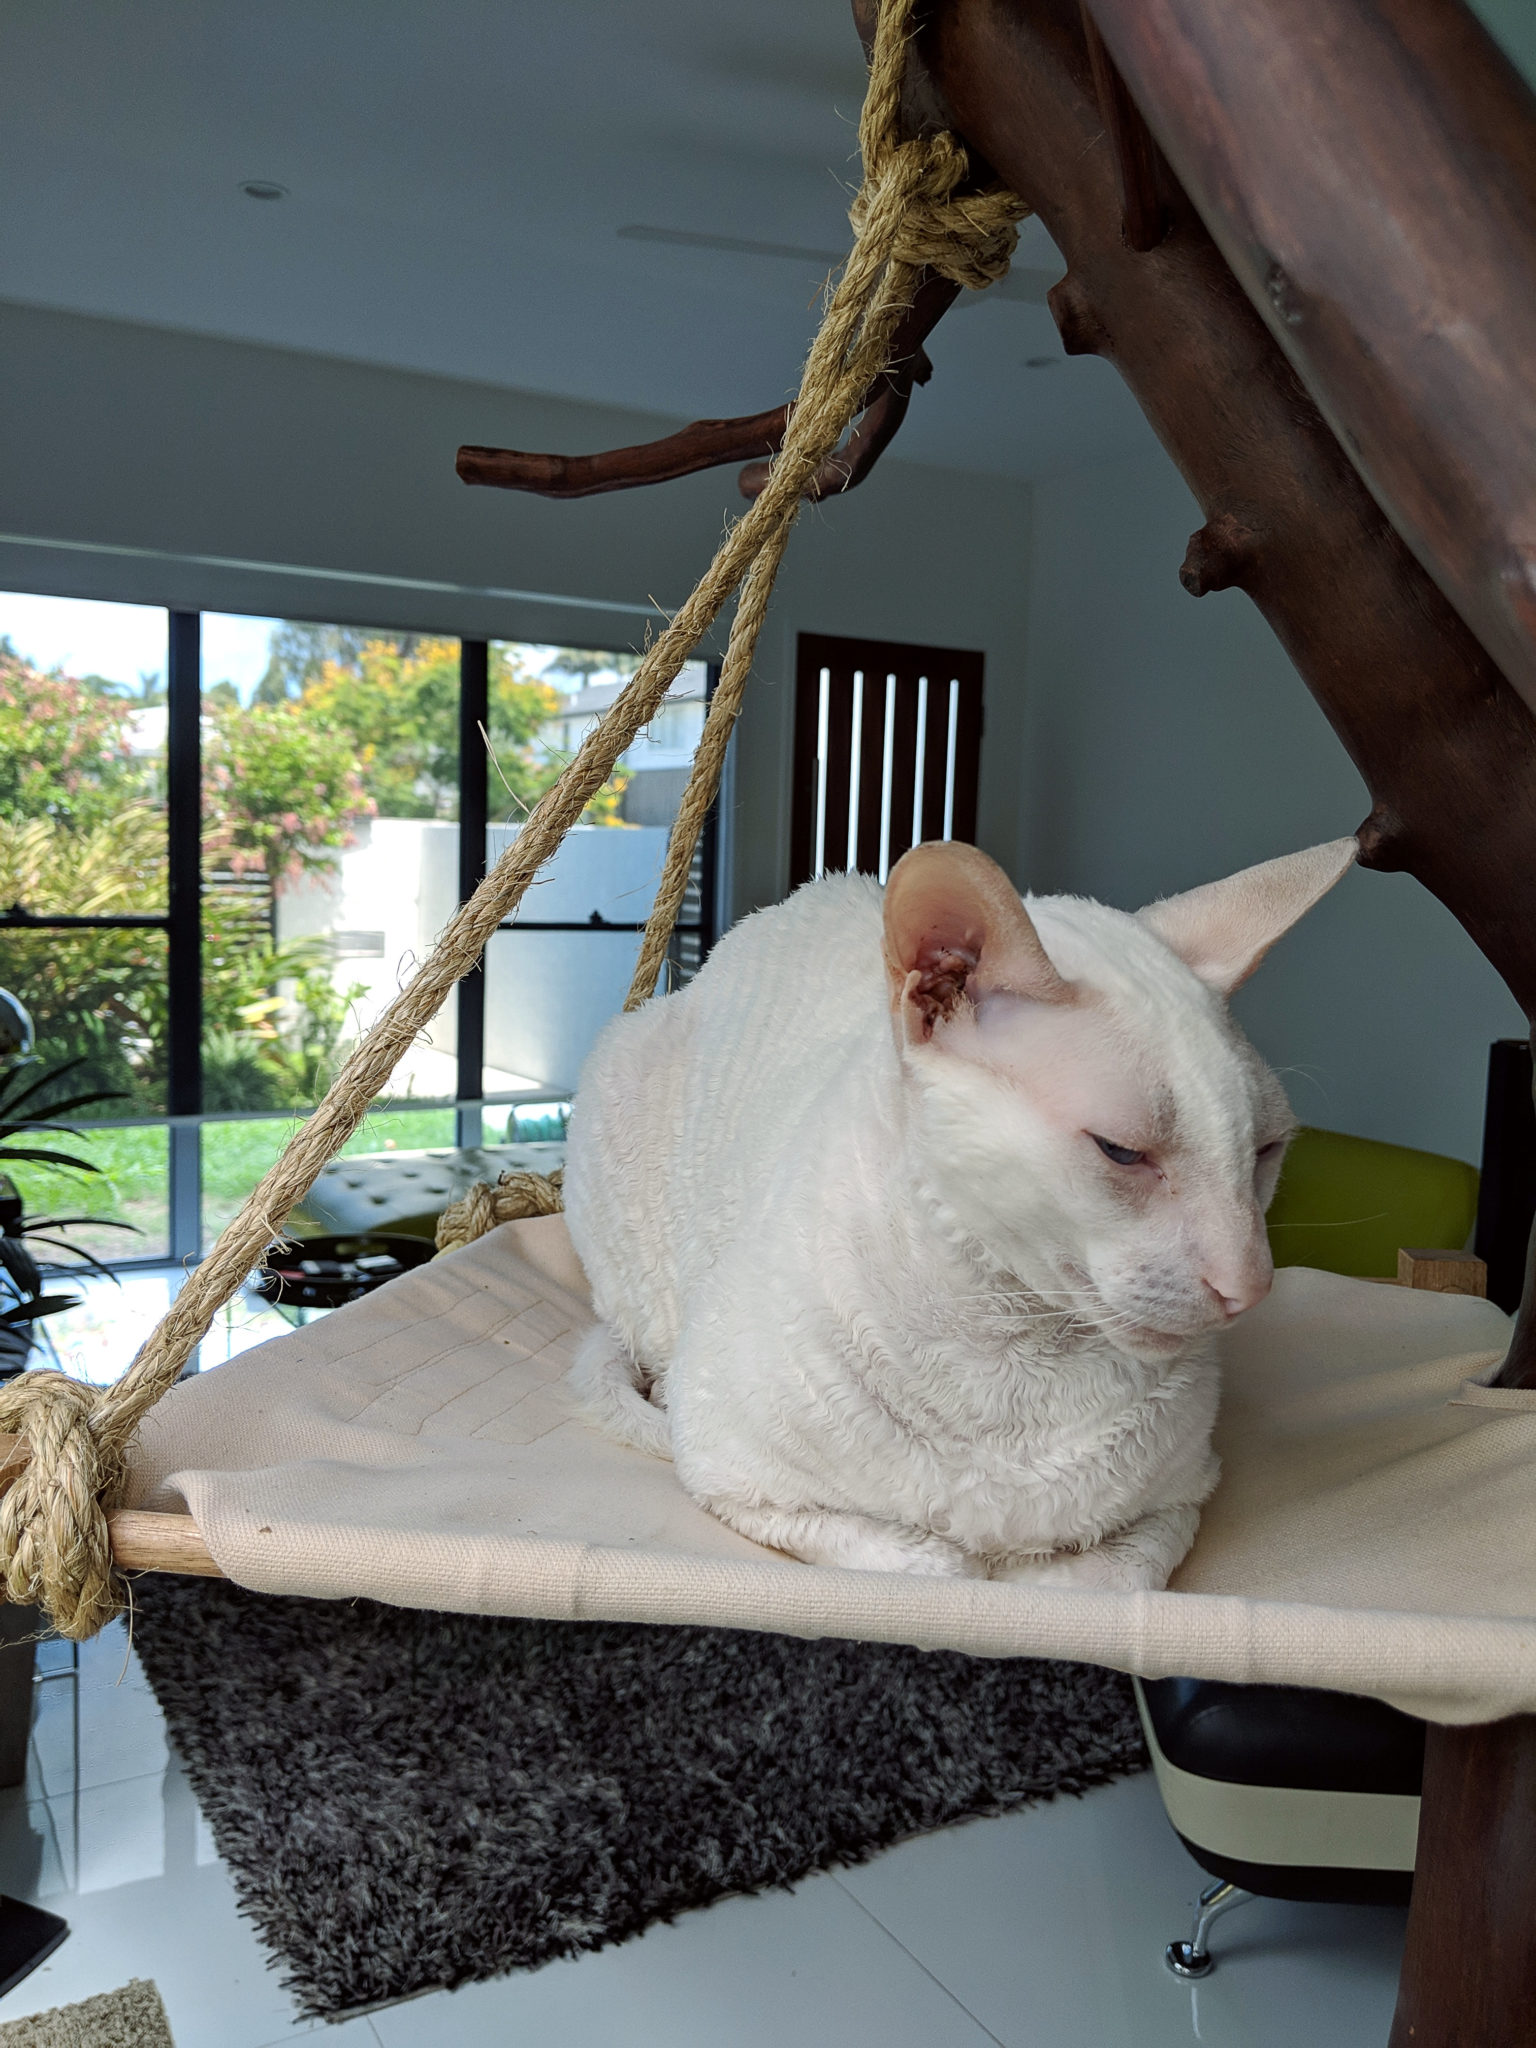 Gandalf takes a catnap in his homemade cat tree